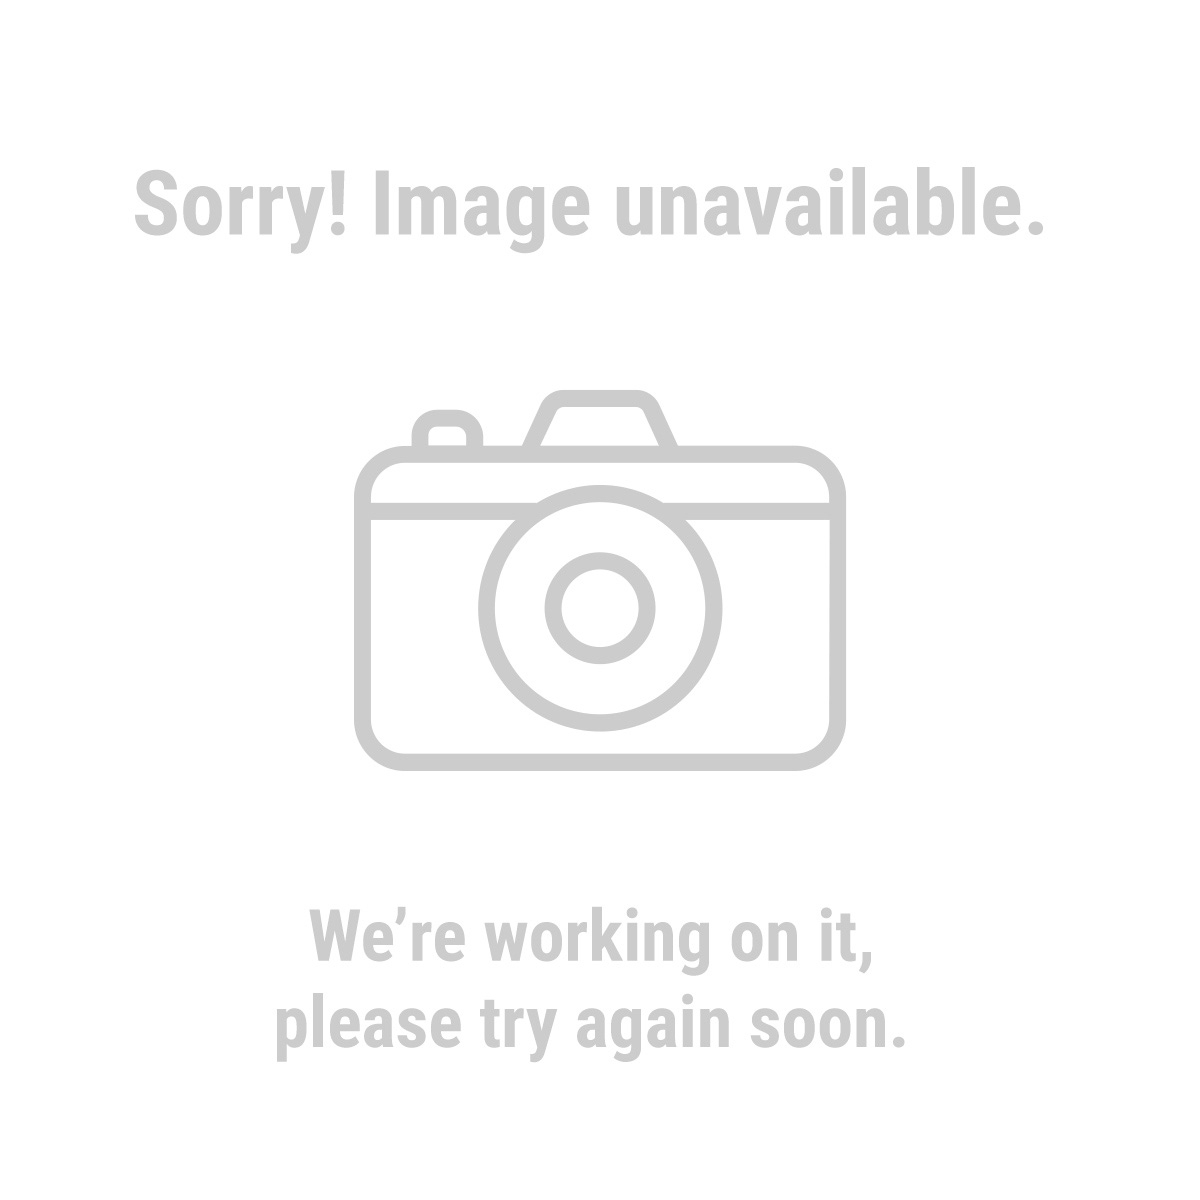 Chicago Electric Power Tools 69275 10 in. 2.5 HP Tile/Brick Saw